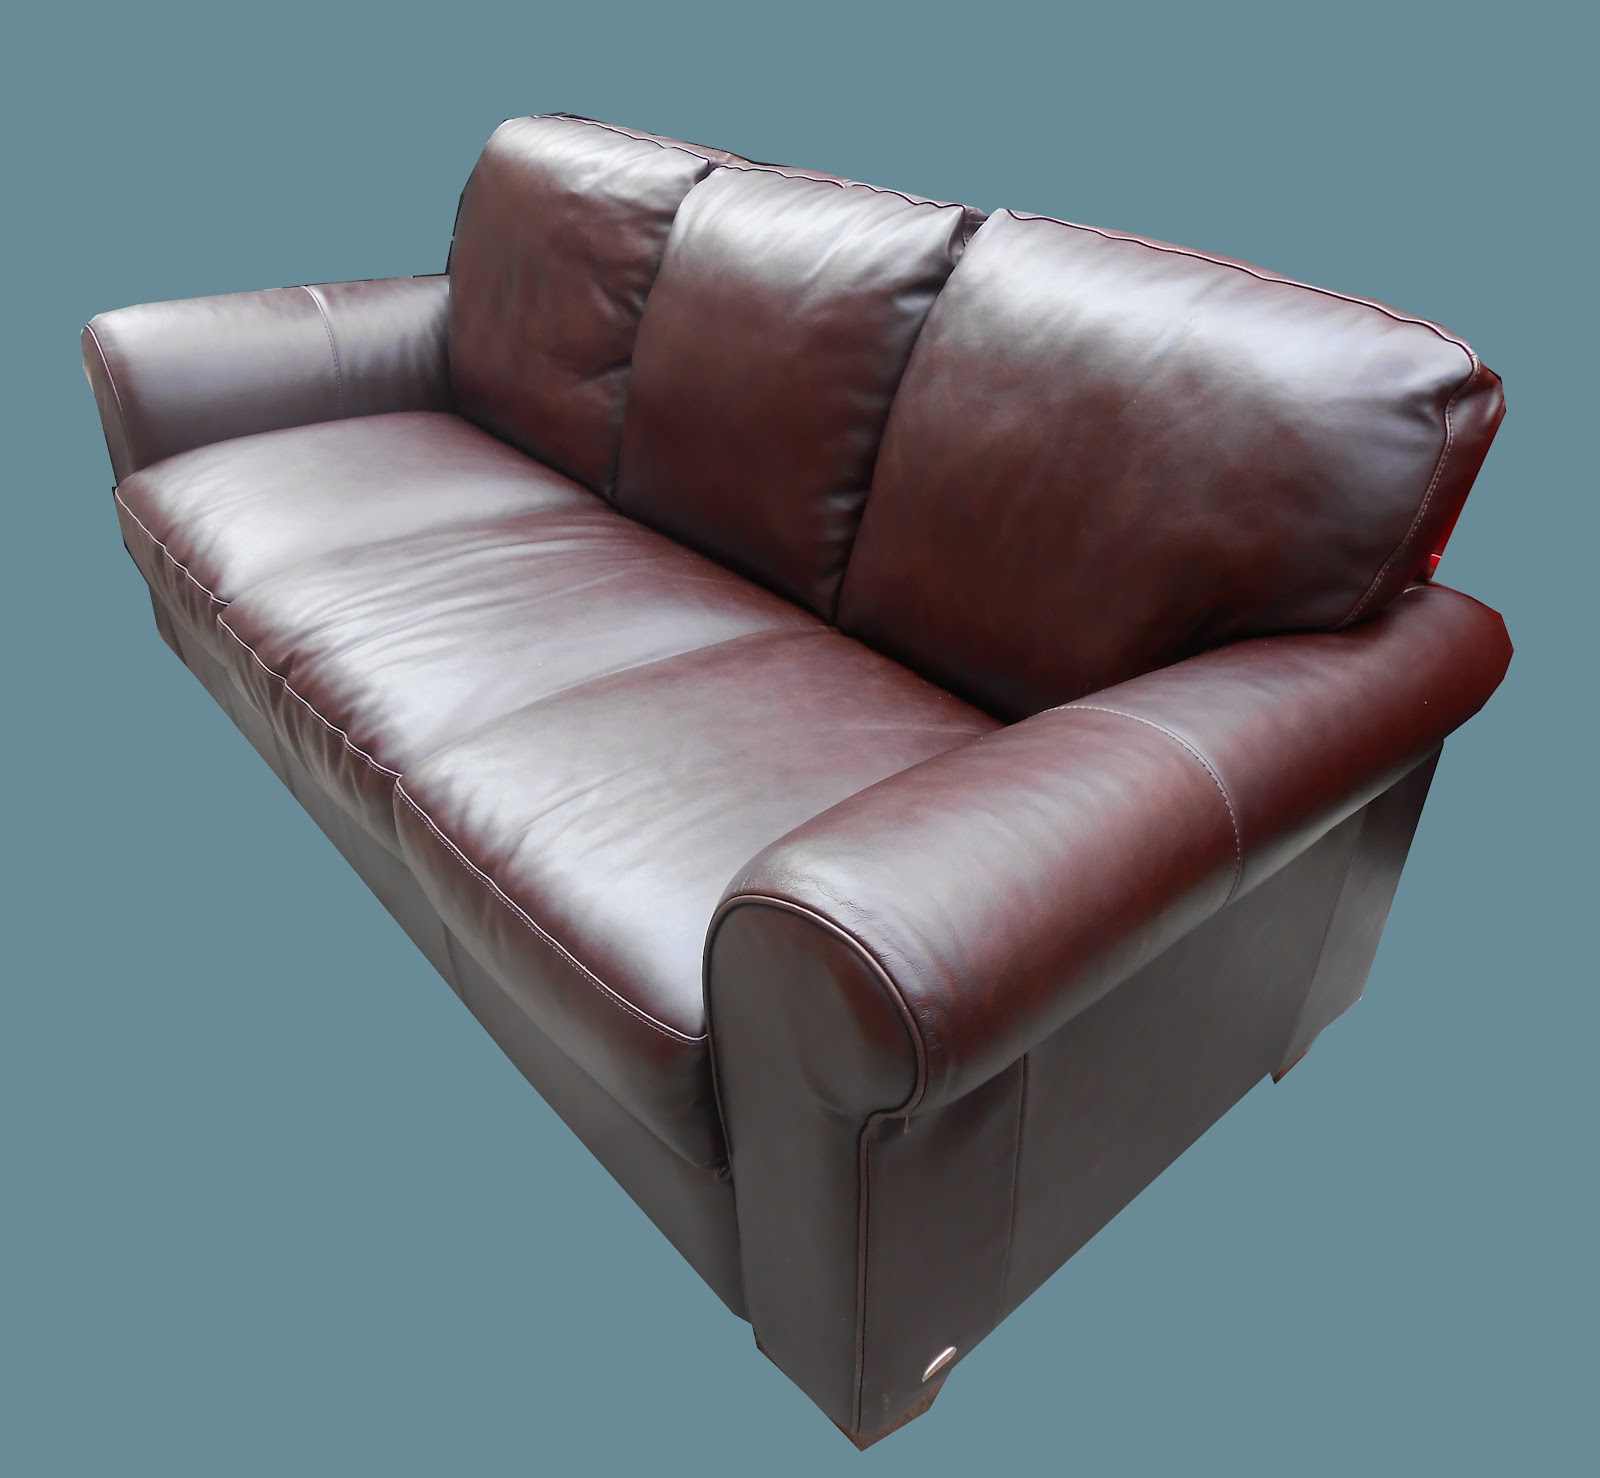 Italsofa Leather Chair Huge Sofas Uhuru Furniture And Collectibles Sofa Sold